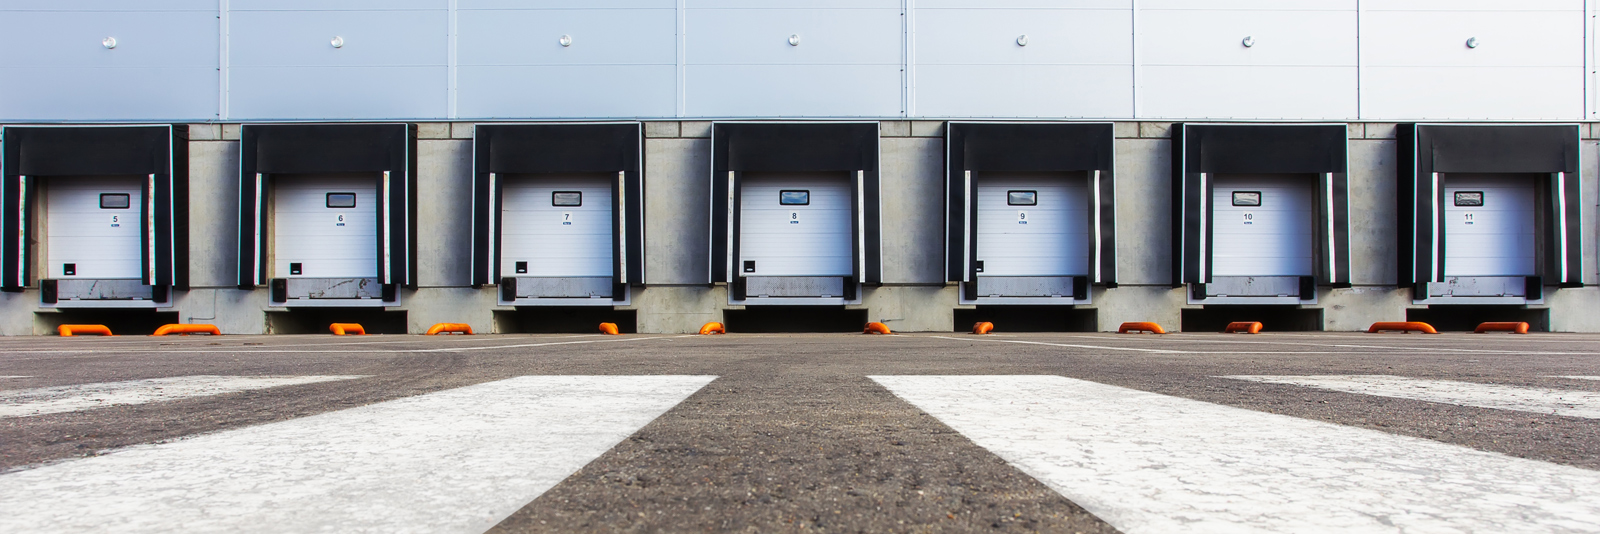 A row of parking spots at a shipping warehouse protected with shippers insurance wait for semi trucks to arrive